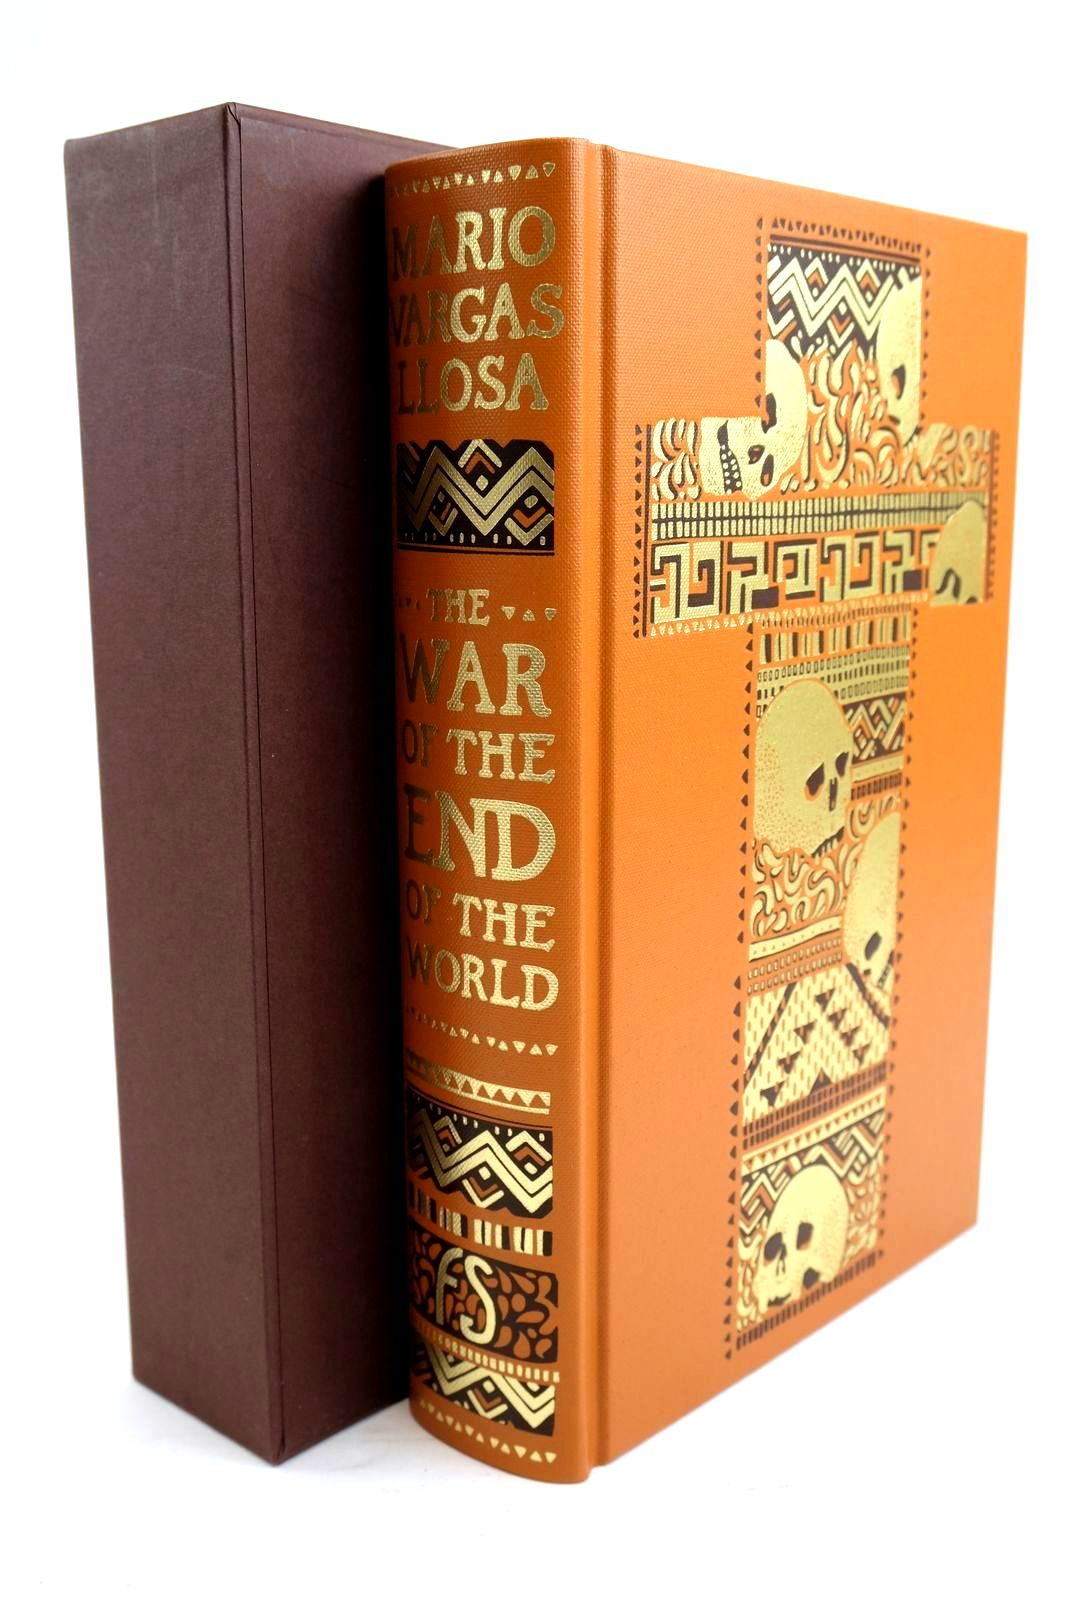 Photo of THE WAR OF THE END OF THE WORLD written by Llosa, Mario Vargas published by Folio Society (STOCK CODE: 1320676)  for sale by Stella & Rose's Books